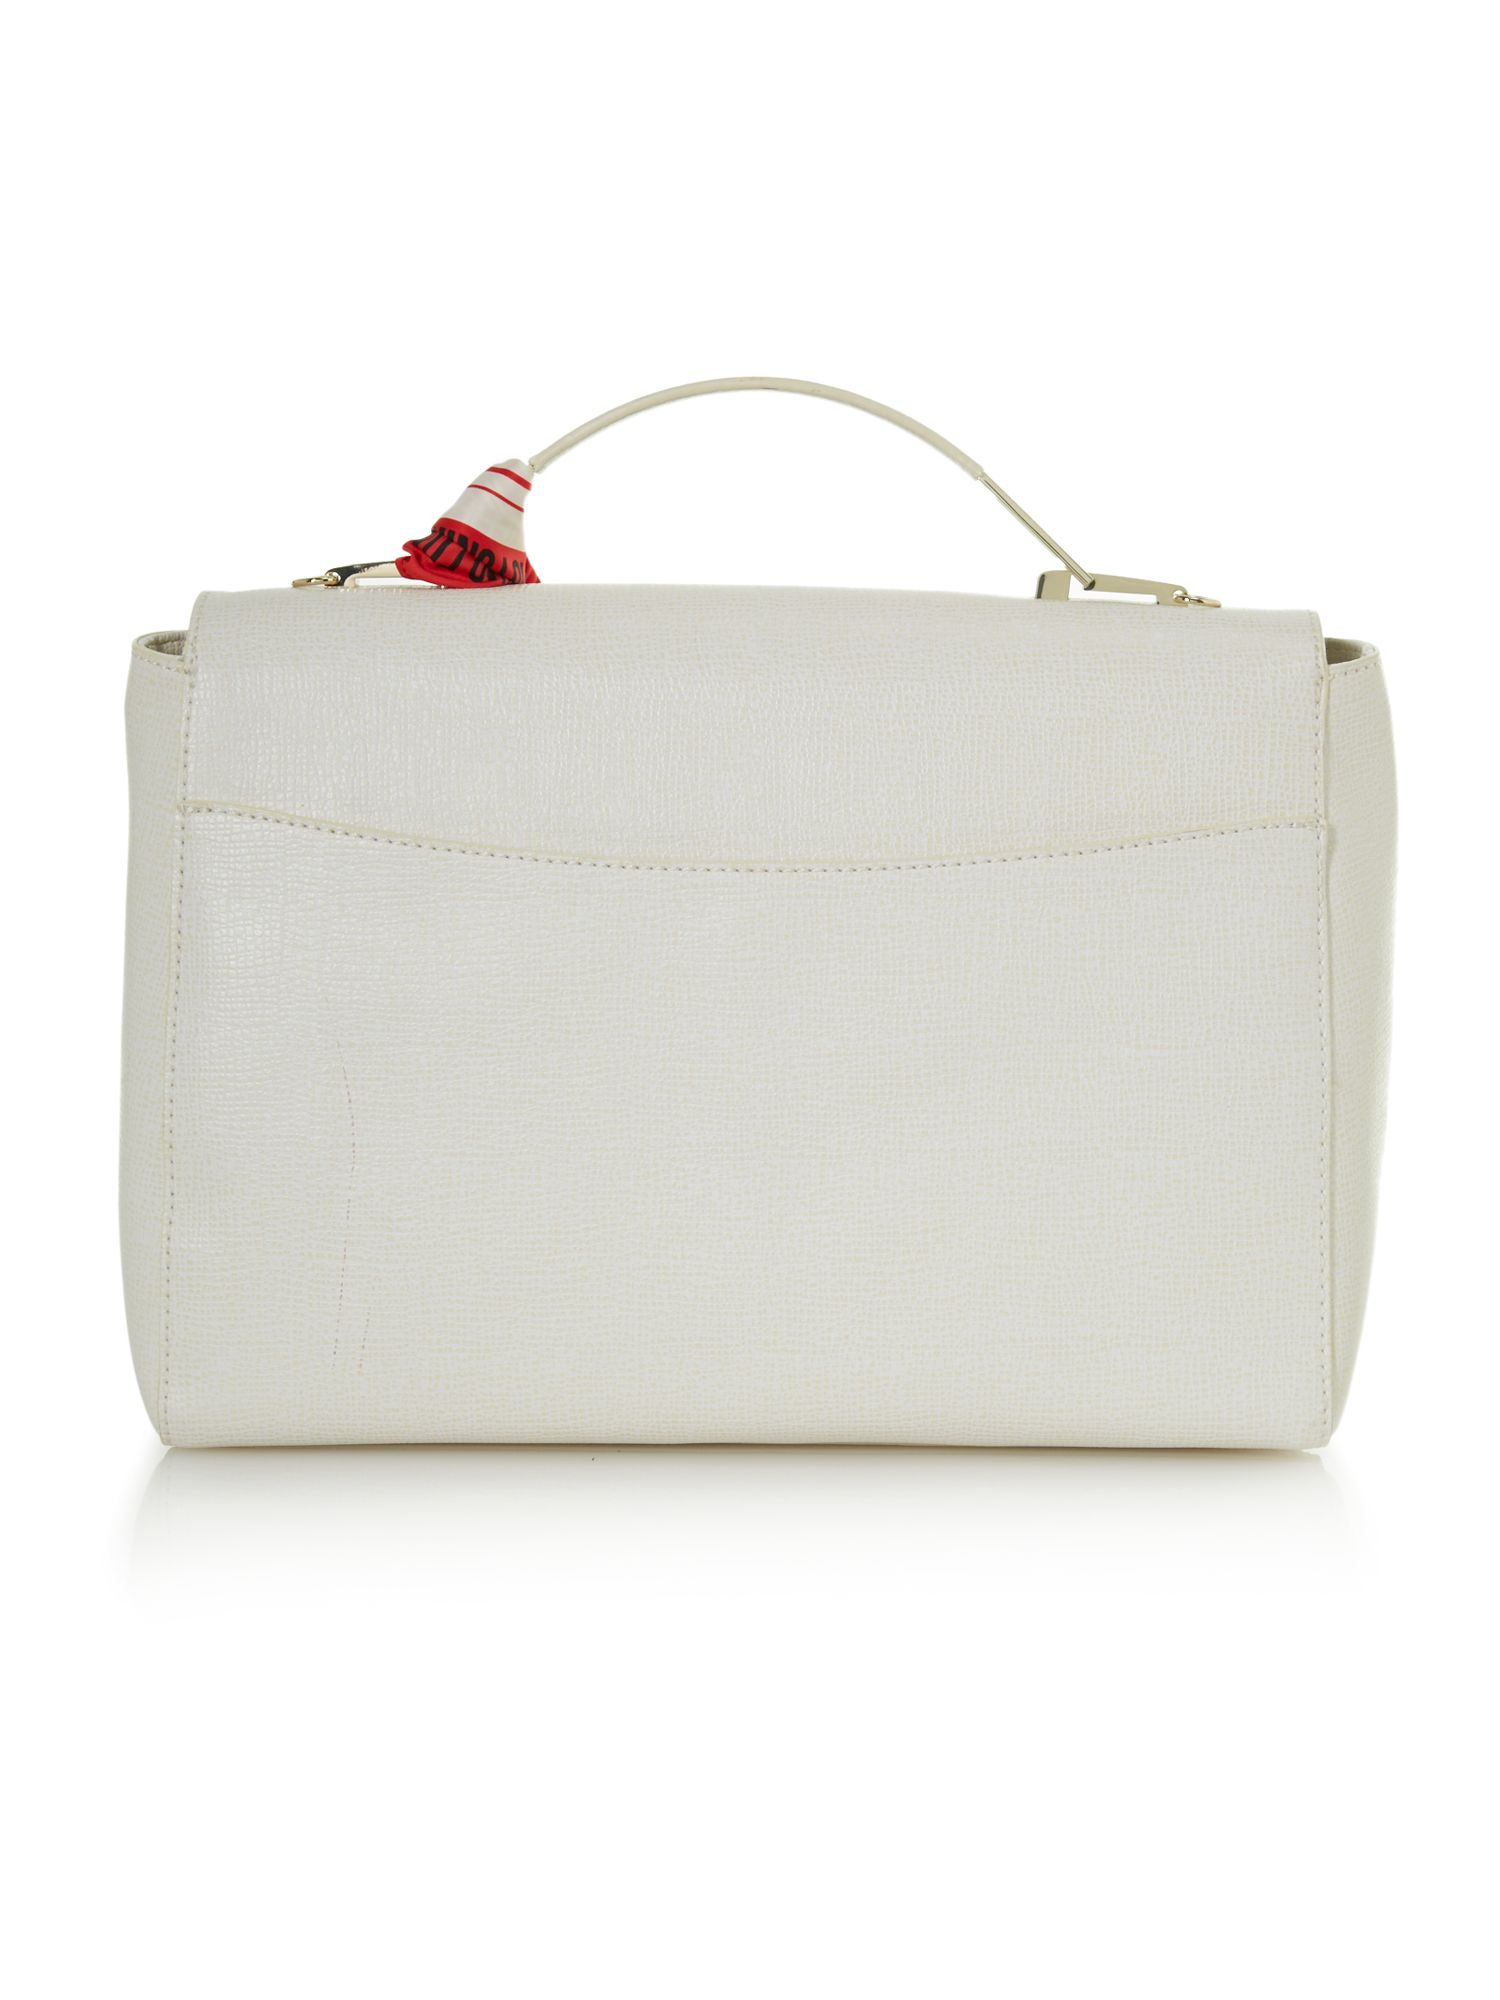 Saffiano white large flapover tote bag